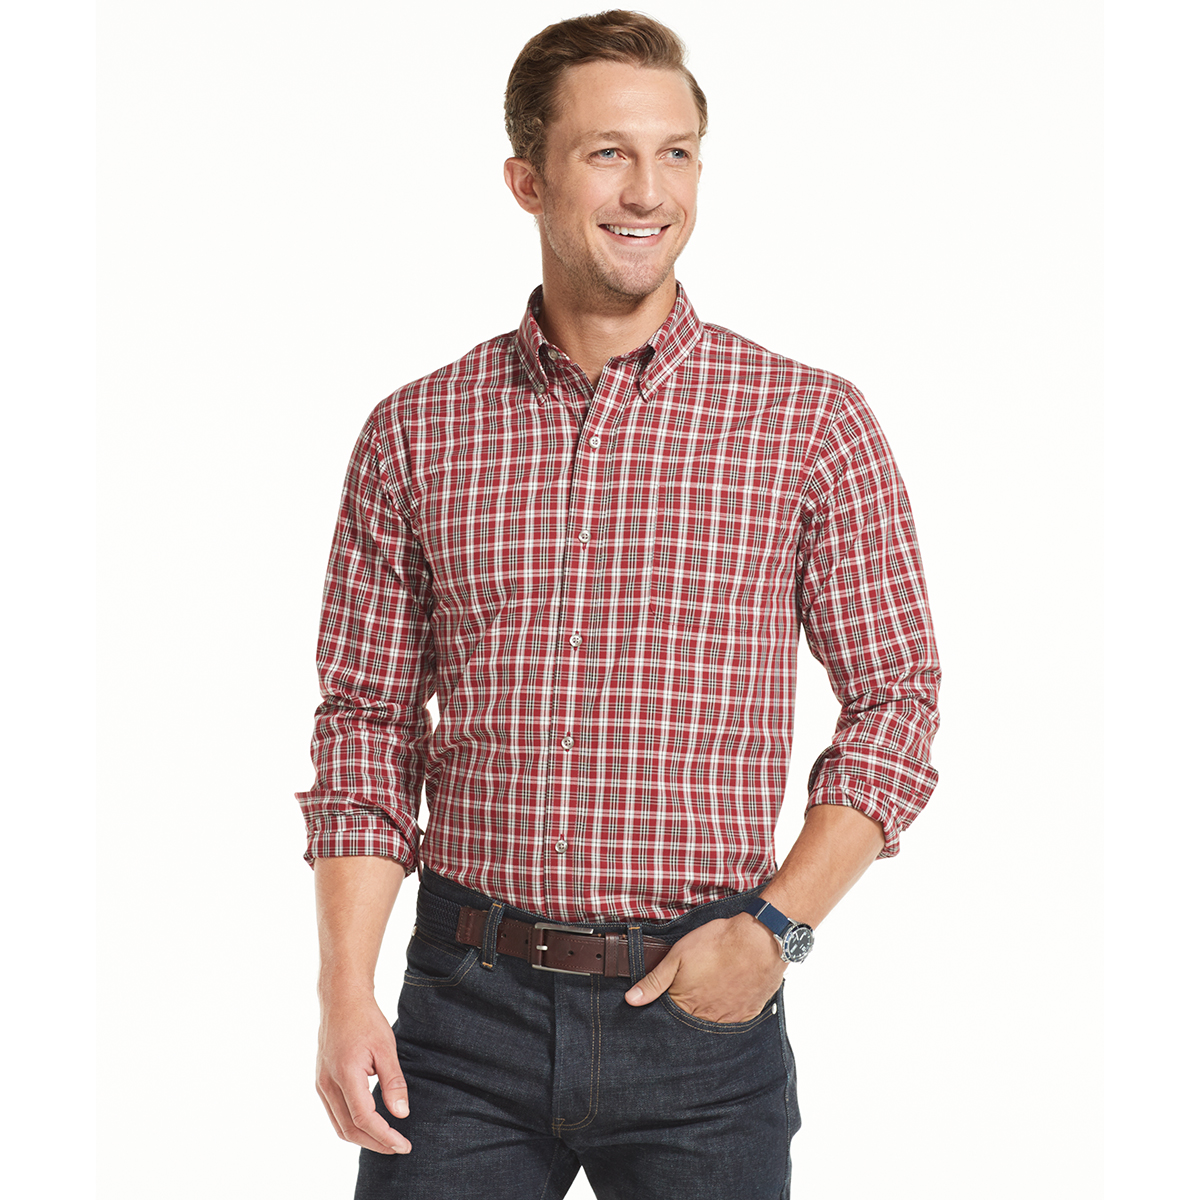 Arrow Men's Hamilton Plaid Poplin Long-Sleeve Button-Down Shirt - Red, M